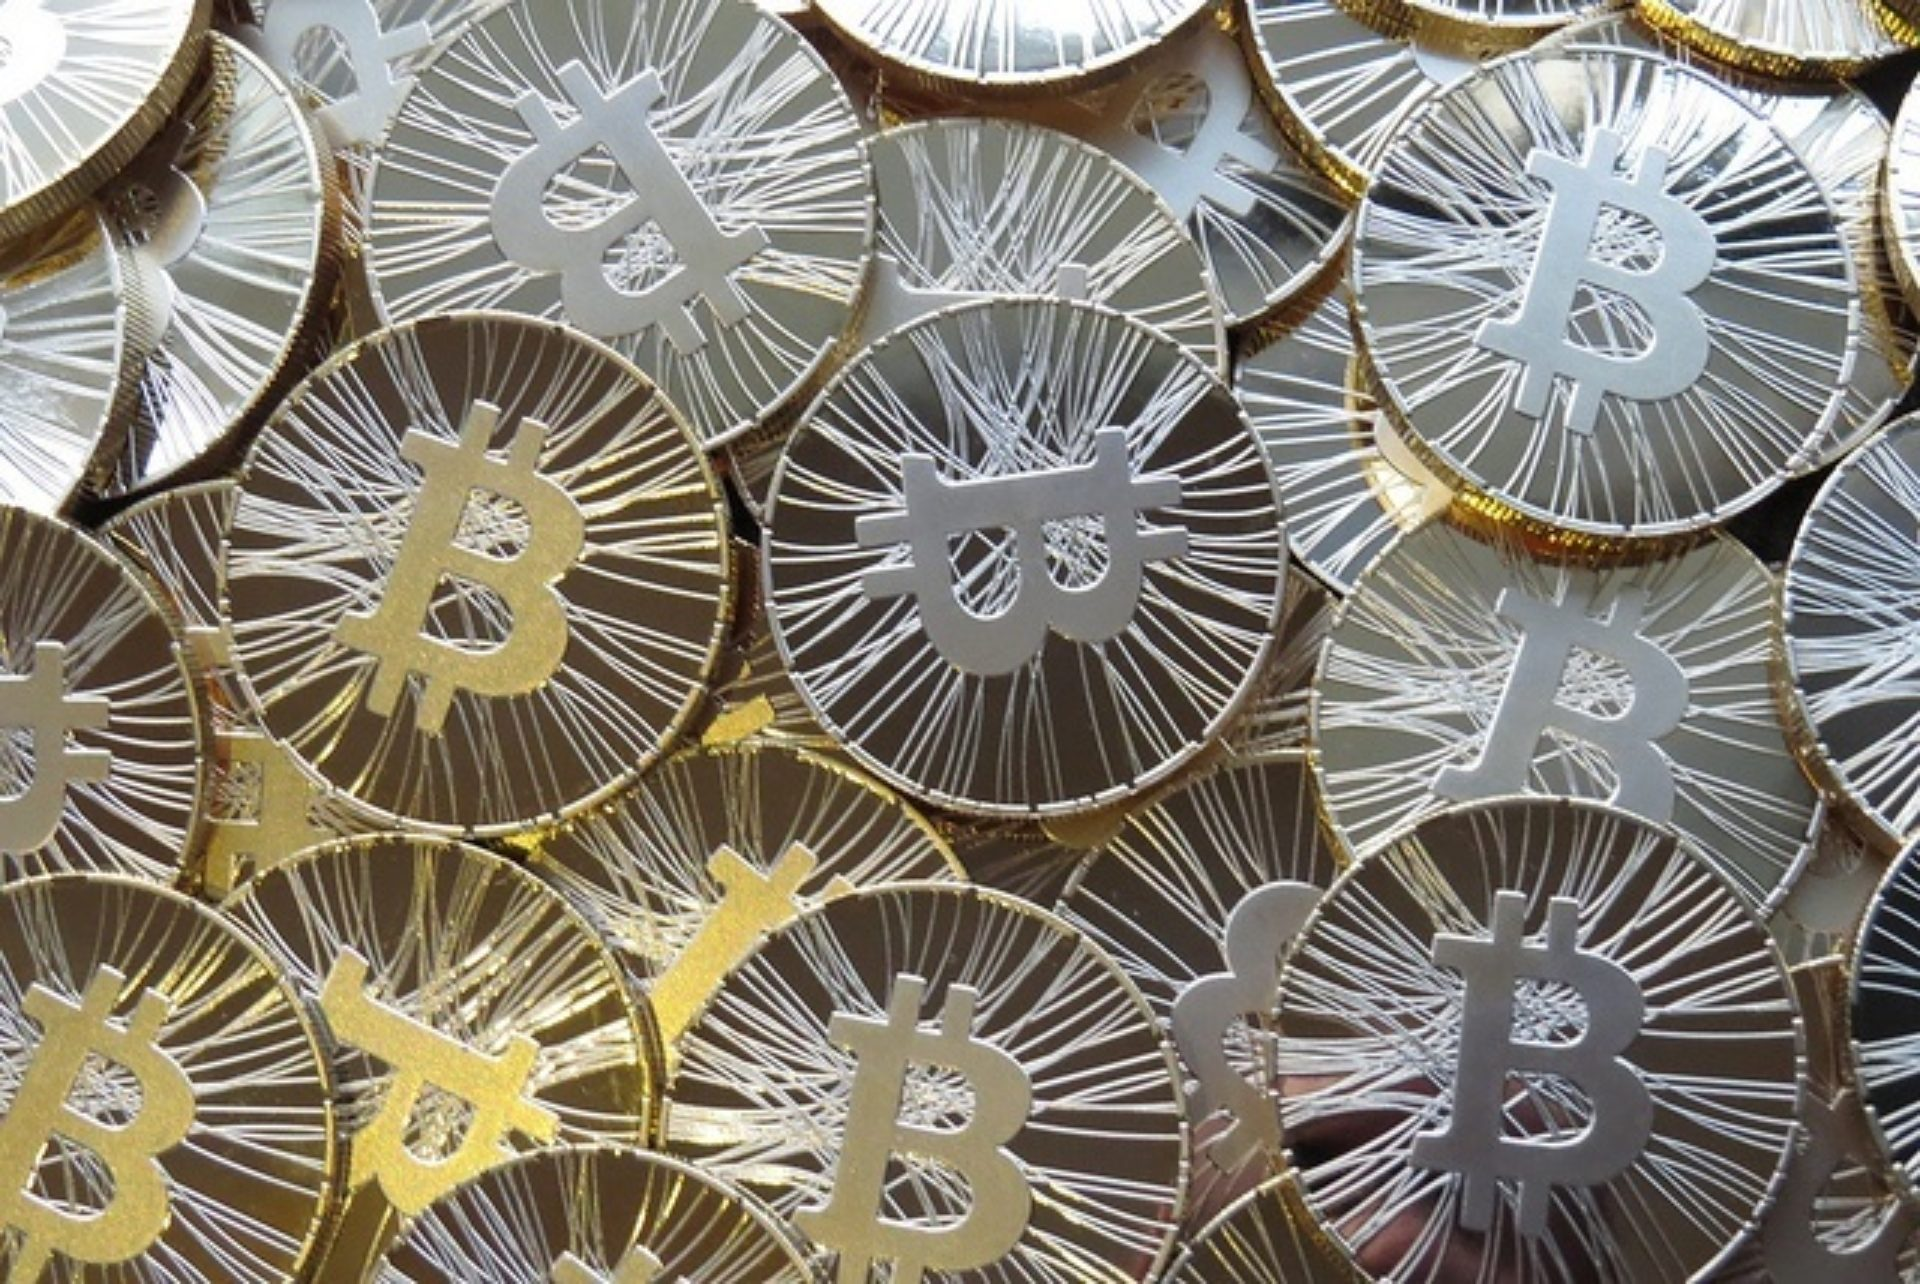 How much is one bitcoin worth? - BBVA NEWS